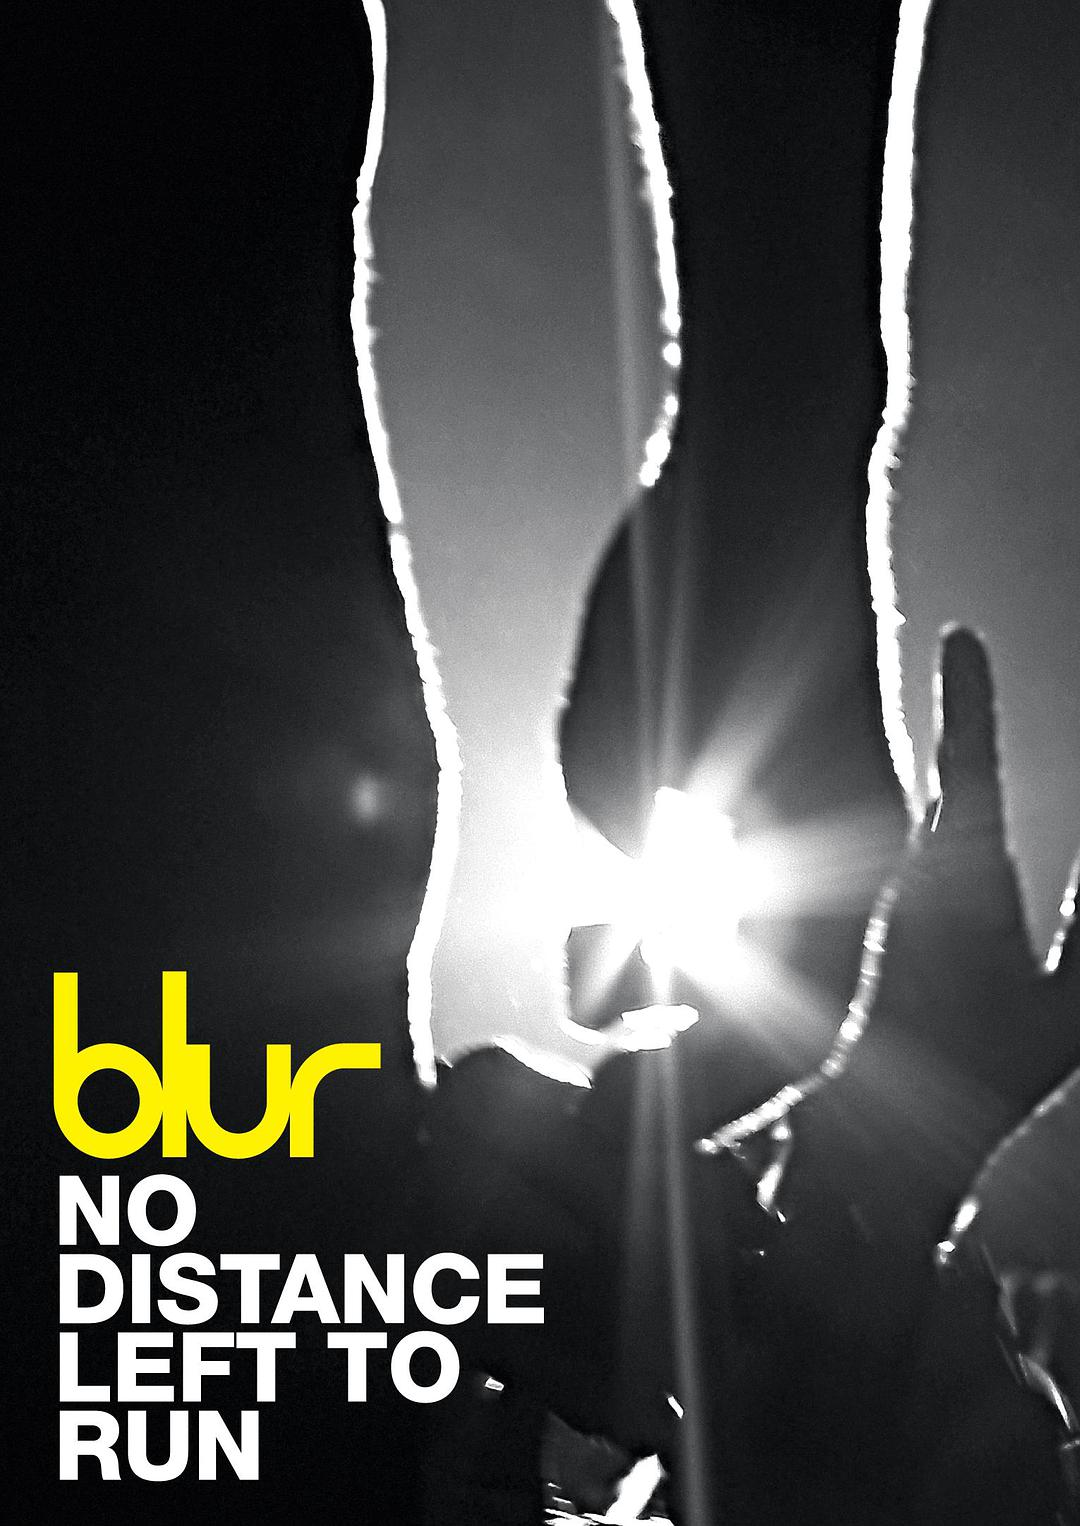 No Distance Left to Run: A Film About Blur